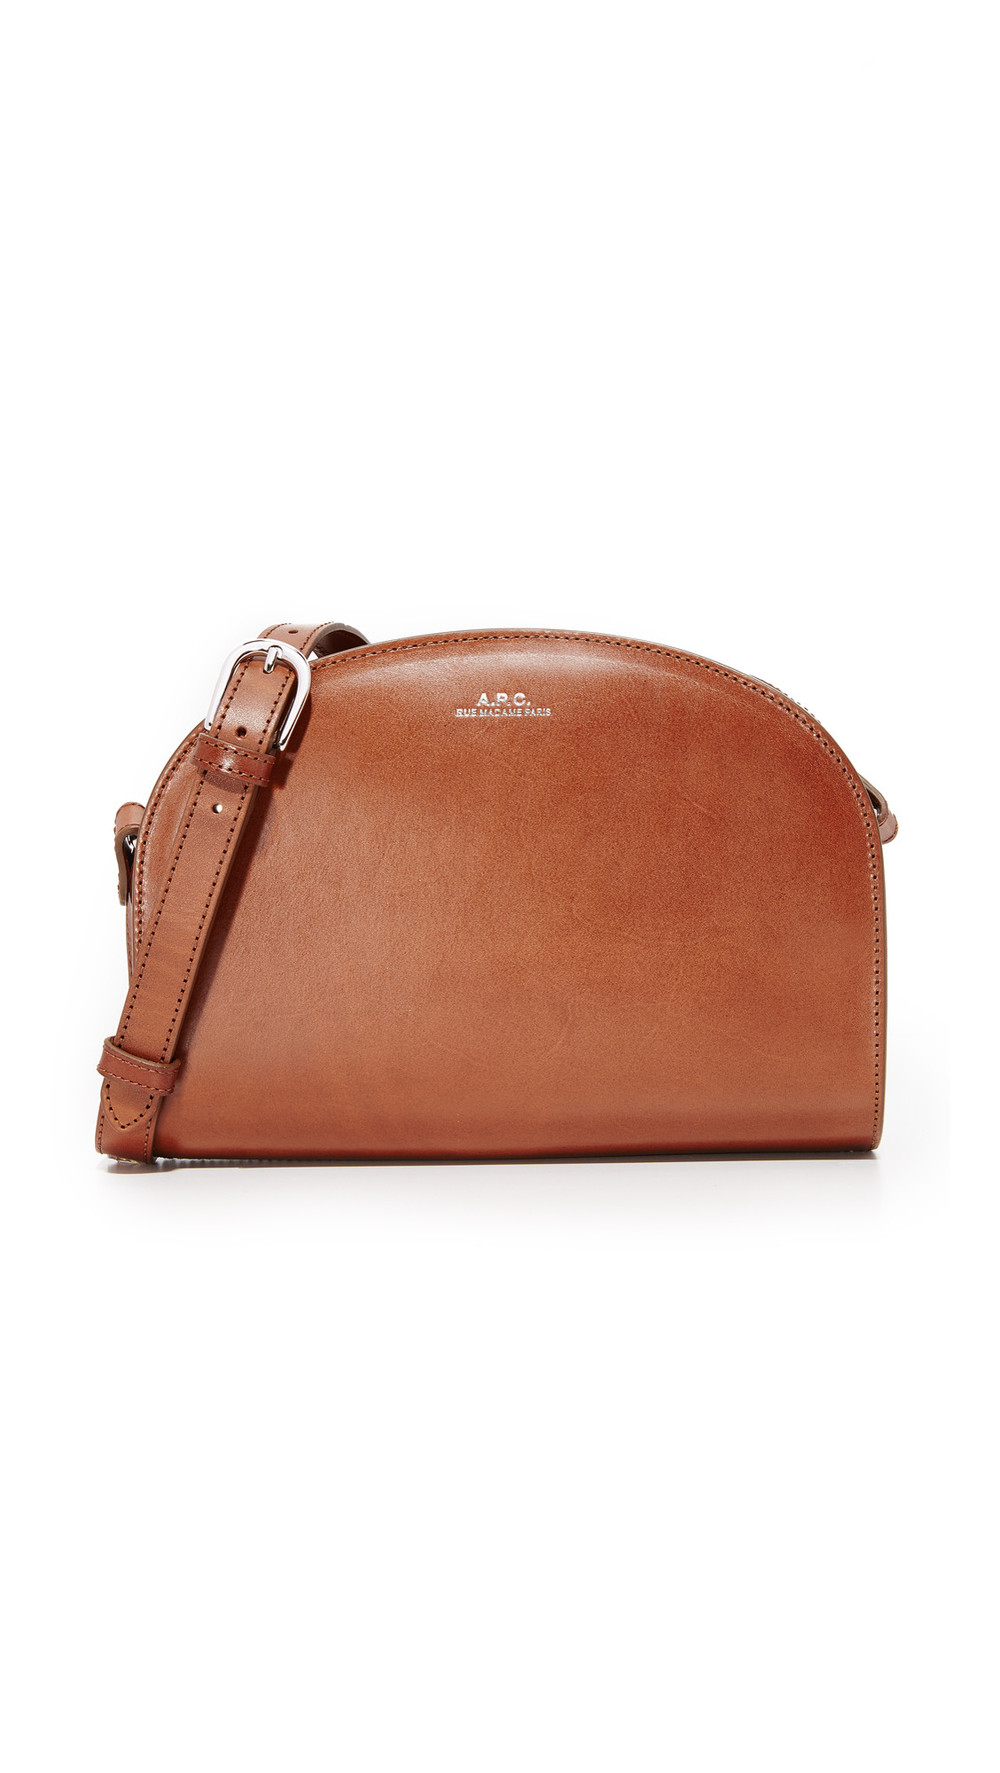 A.P.C. A.P.C. Half Moon Bag - Noisette